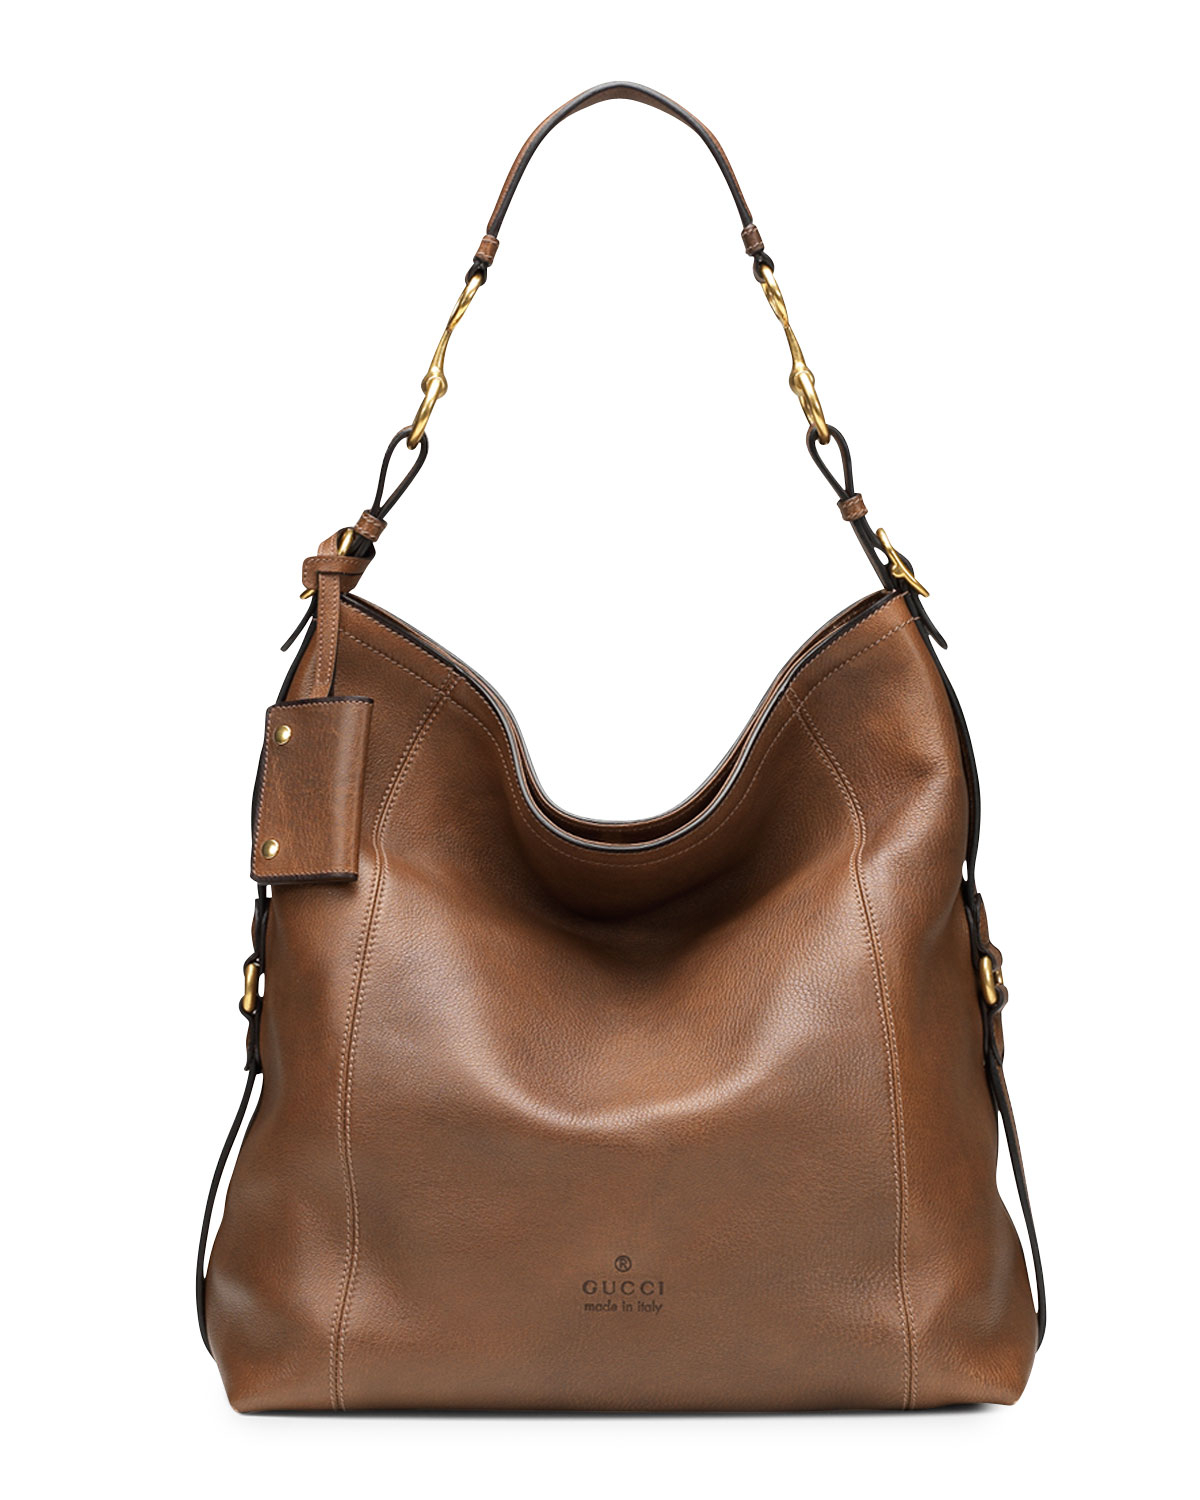 0af4e271483 Lyst - Gucci Harness Leather Hobo Bag in Brown